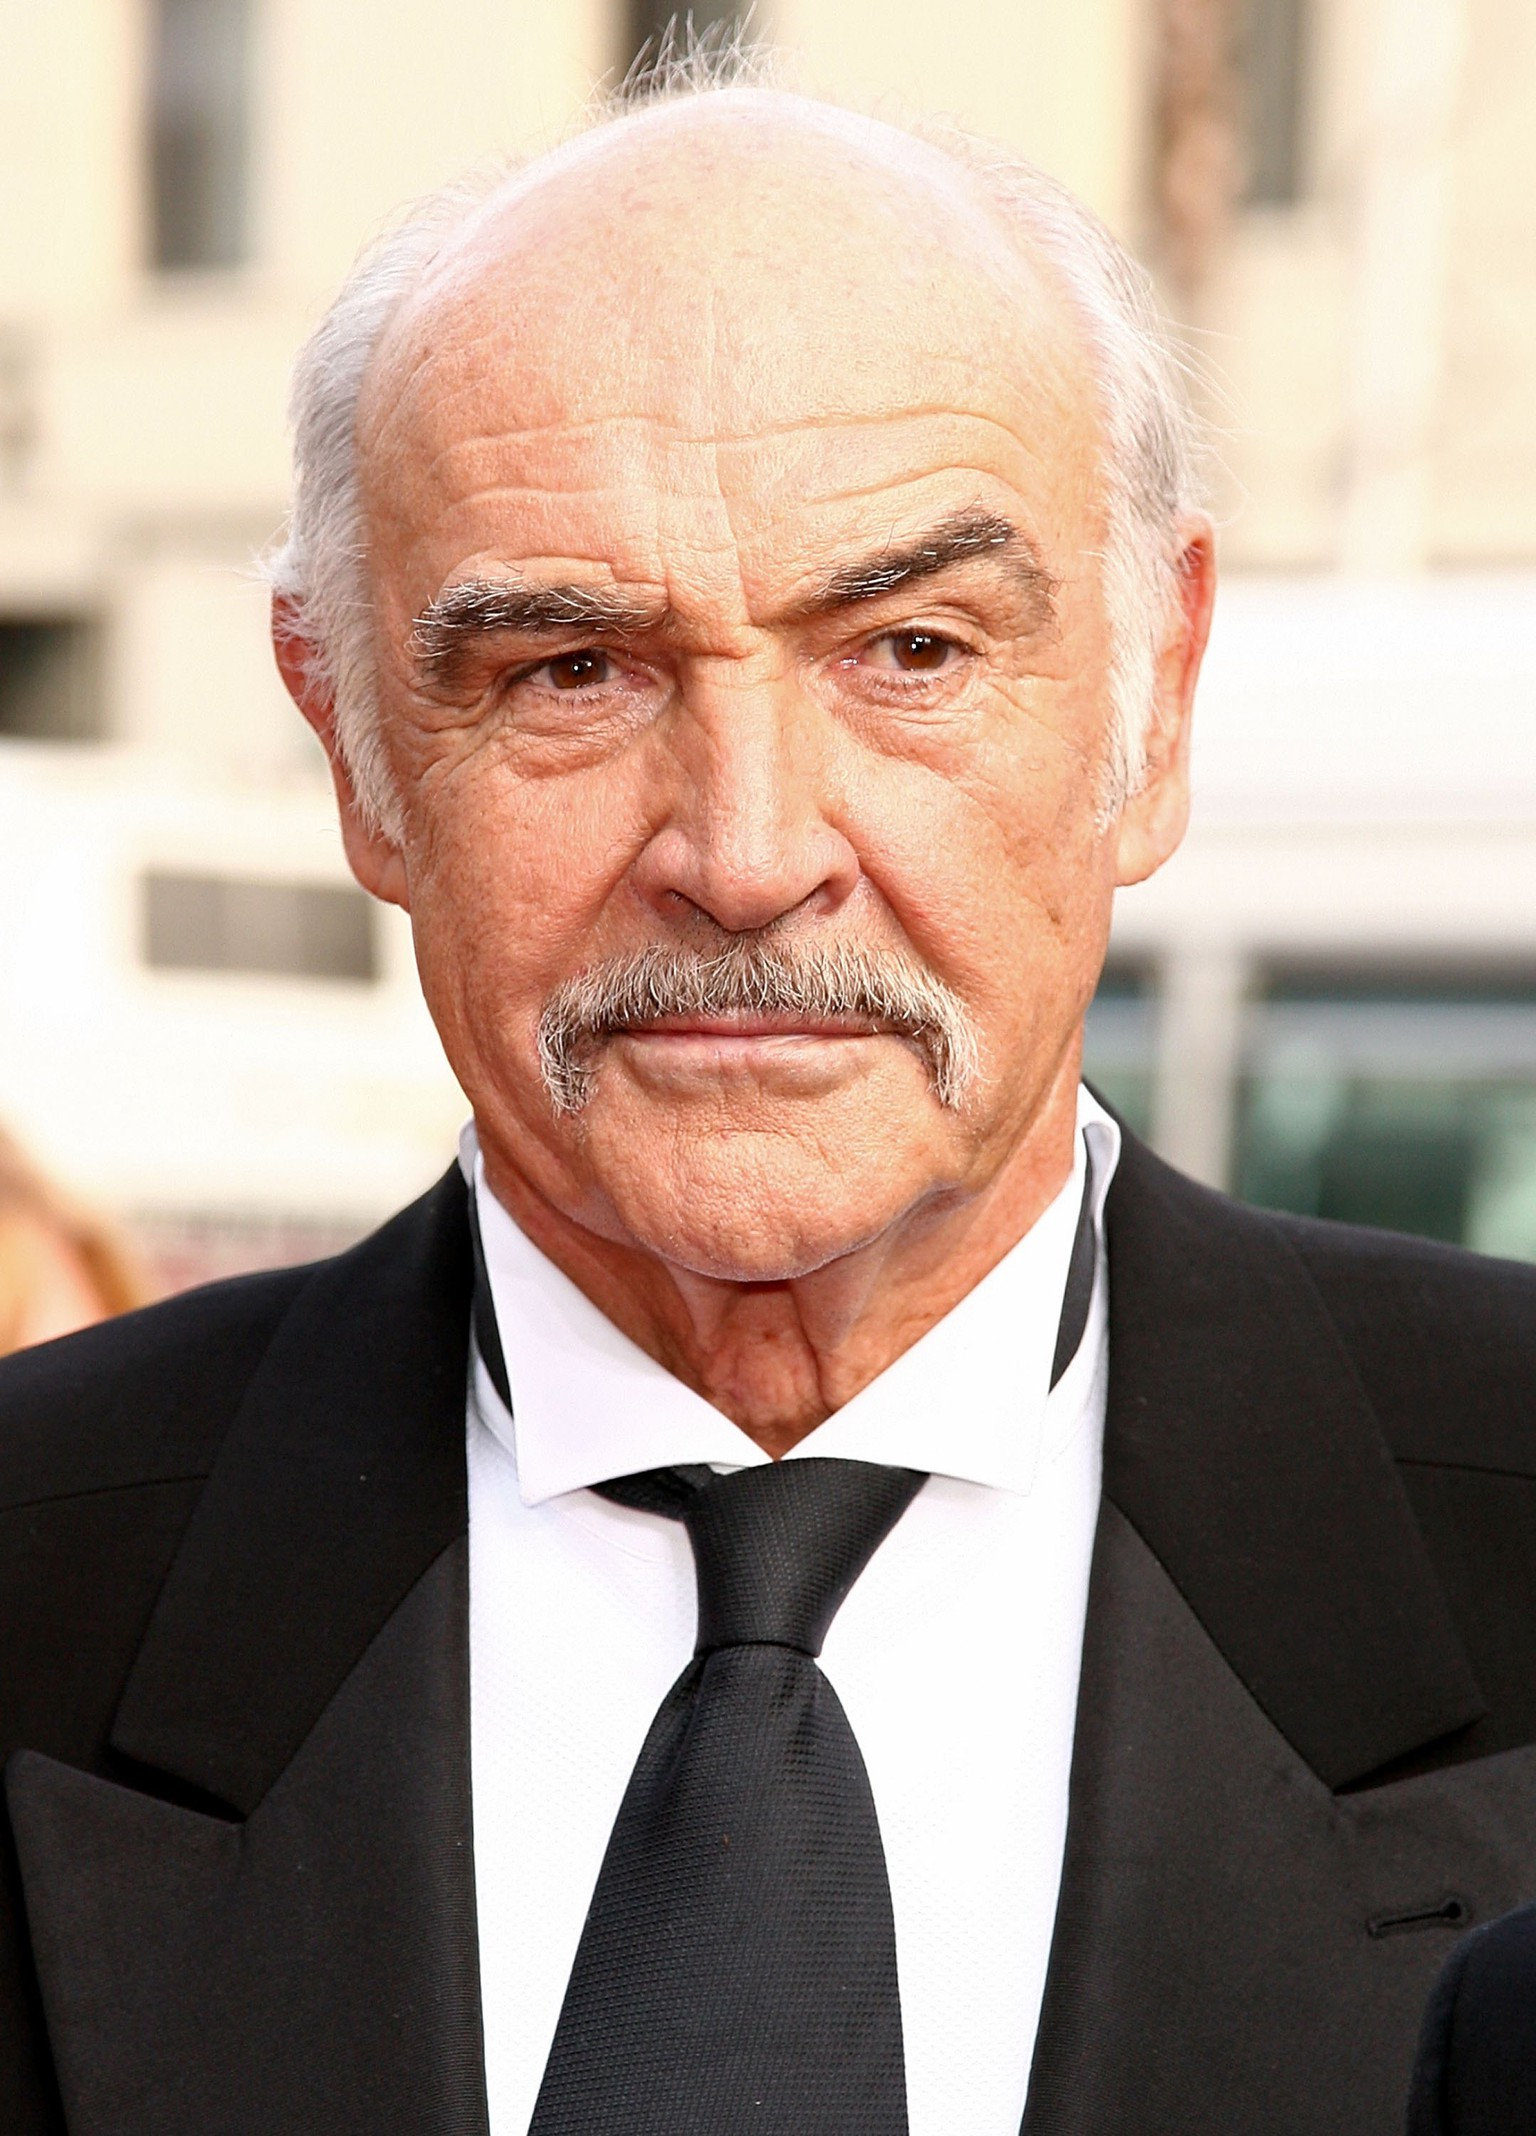 HOLLYWOOD - JUNE 08:  Actor Sean Connery arrives at the 34th AFI Life Achievement Award tribute to Sir Sean Connery held at the Kodak Theatre on June 8, 2006 in Hollywood, California.  (Photo by Kevin Winter/Getty Images for AFI)